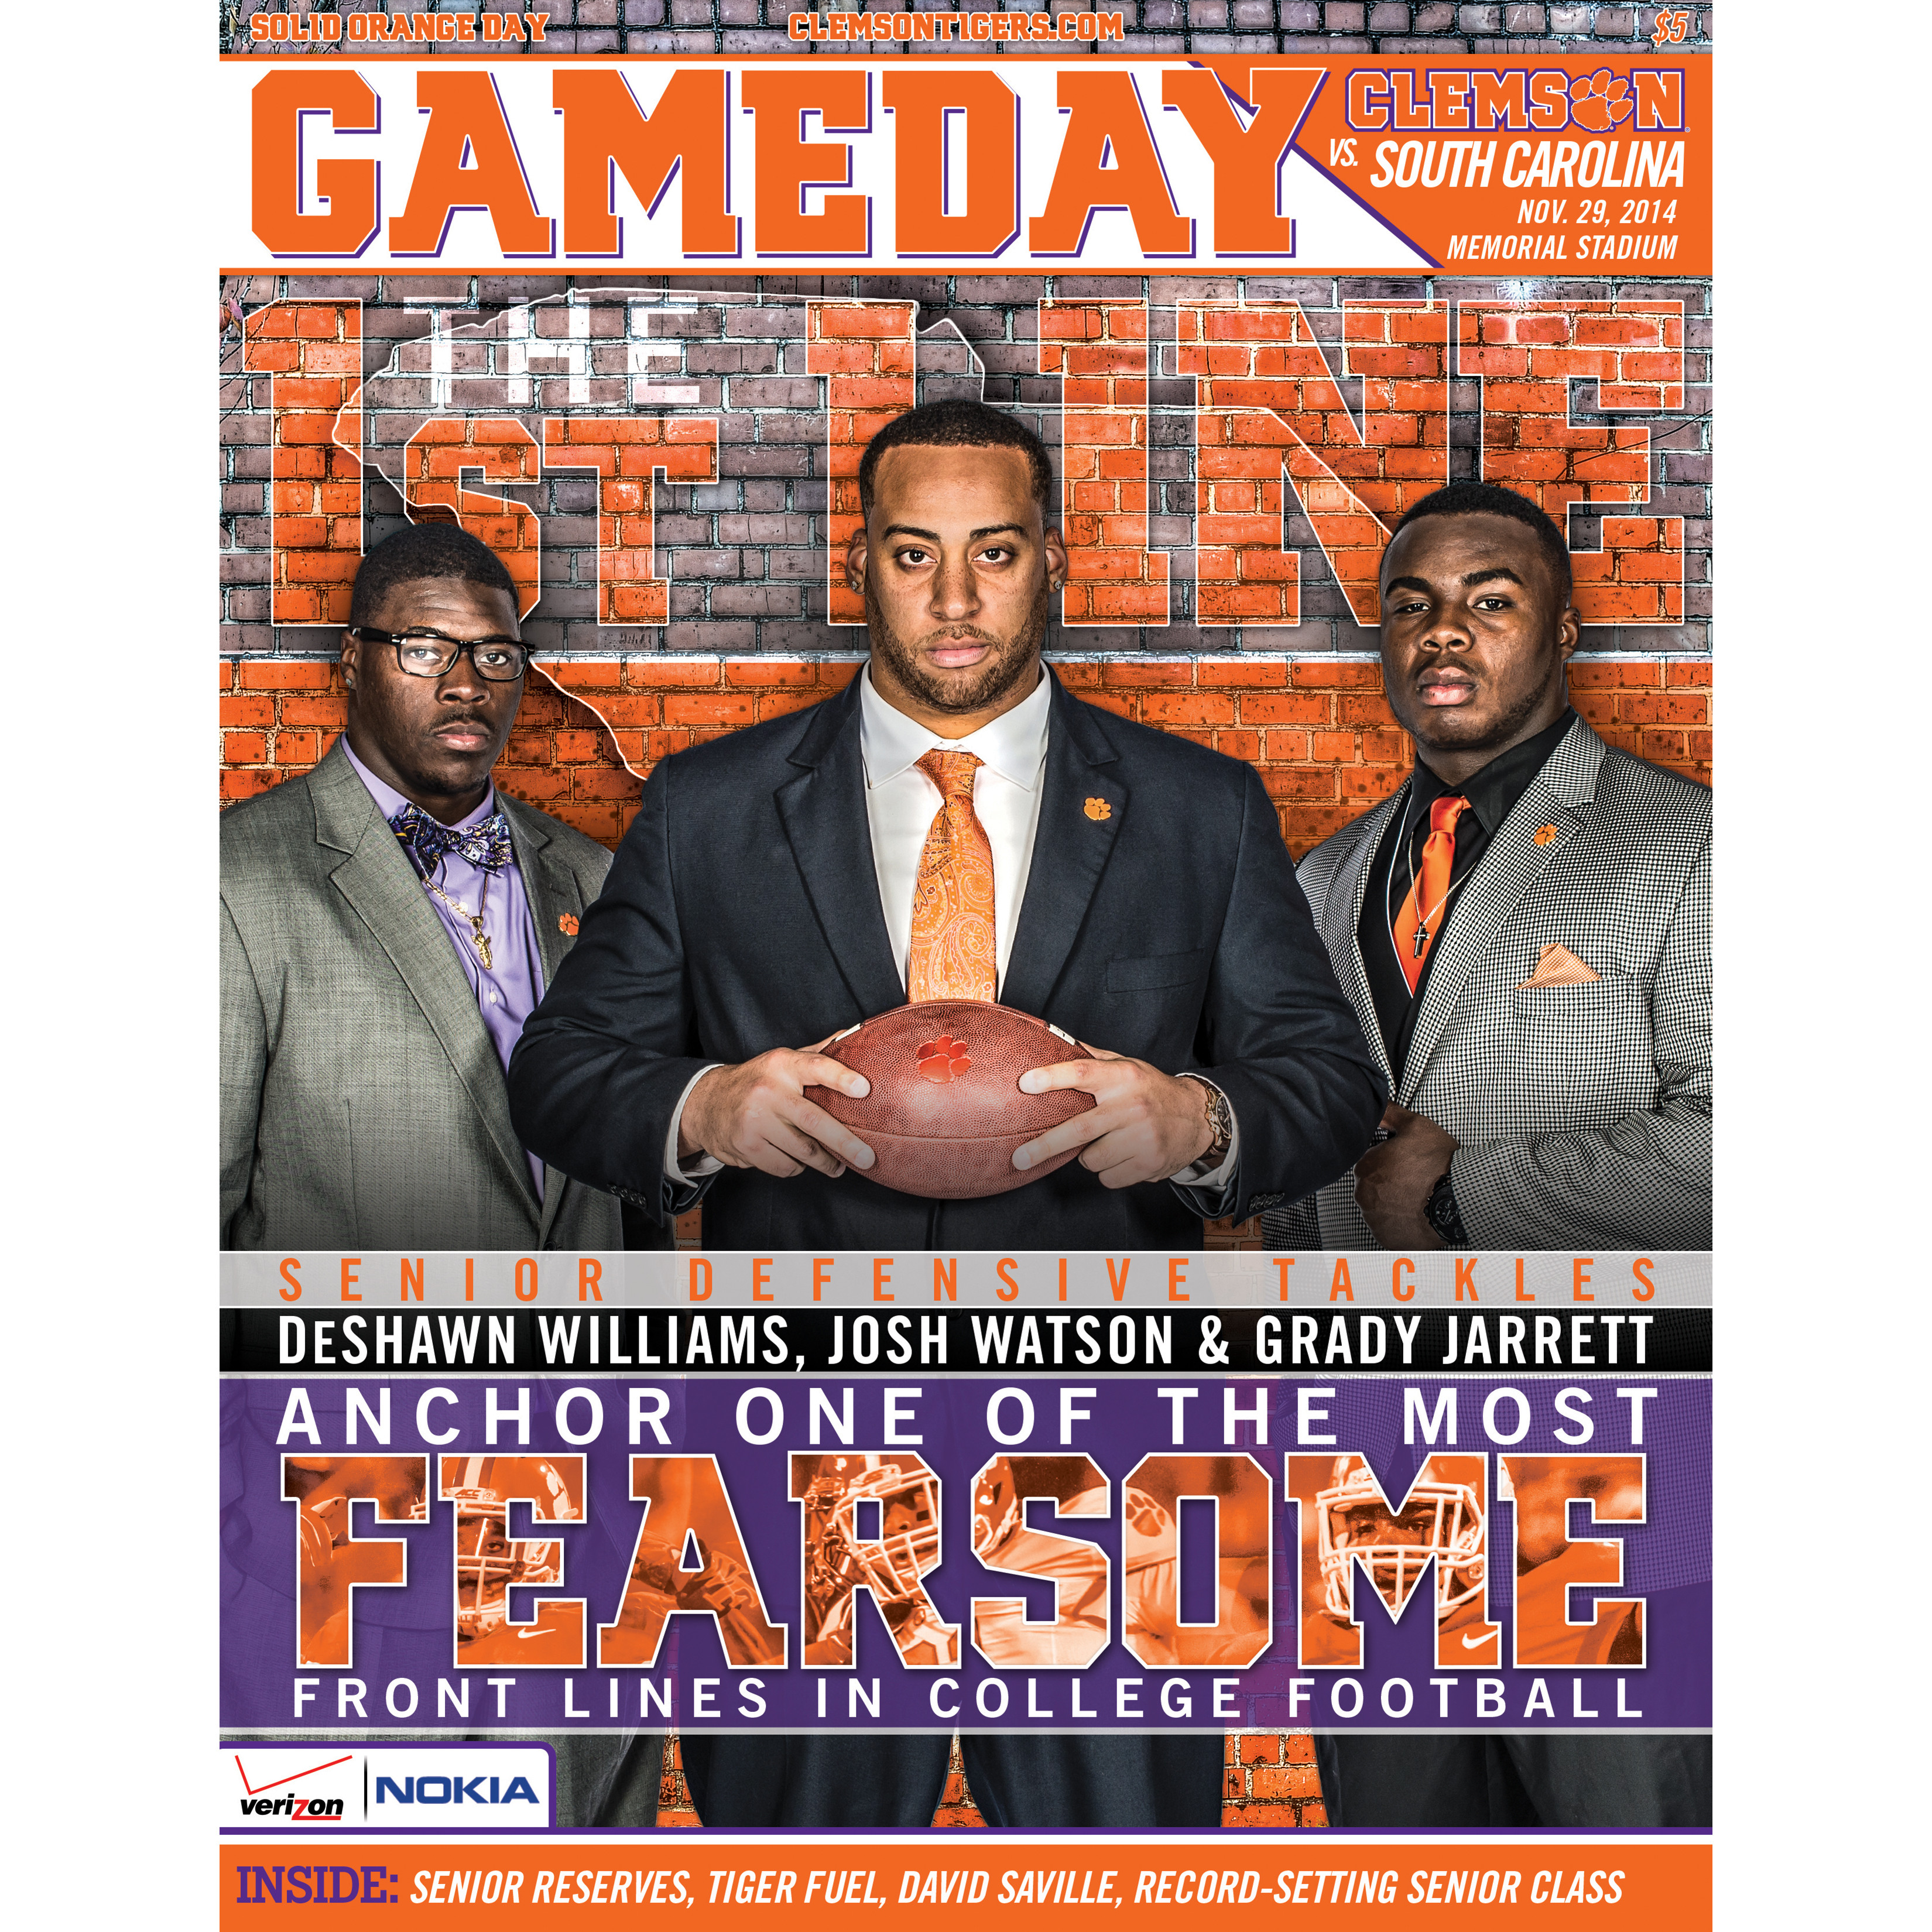 South Carolina Game Program Available to Purchase & View Online